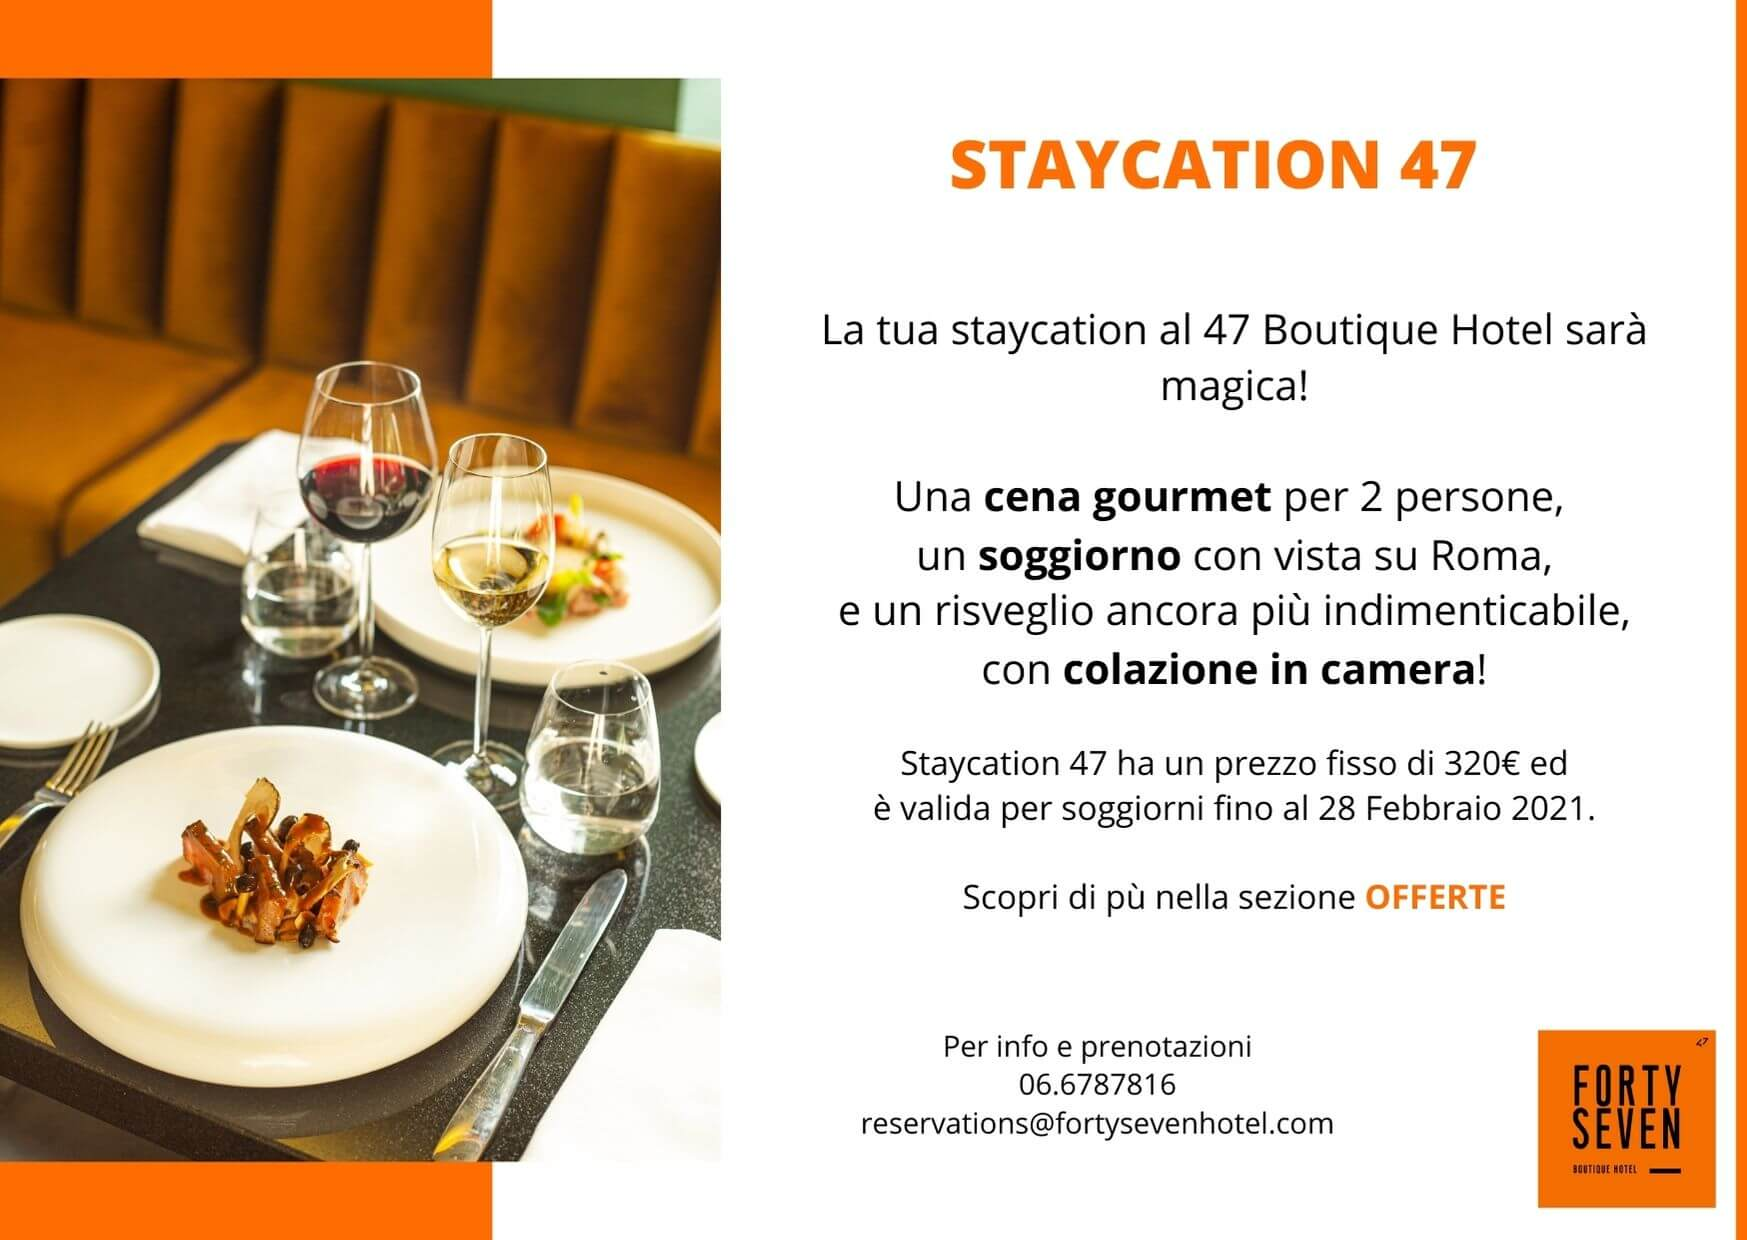 staycation-ita-fortyseven